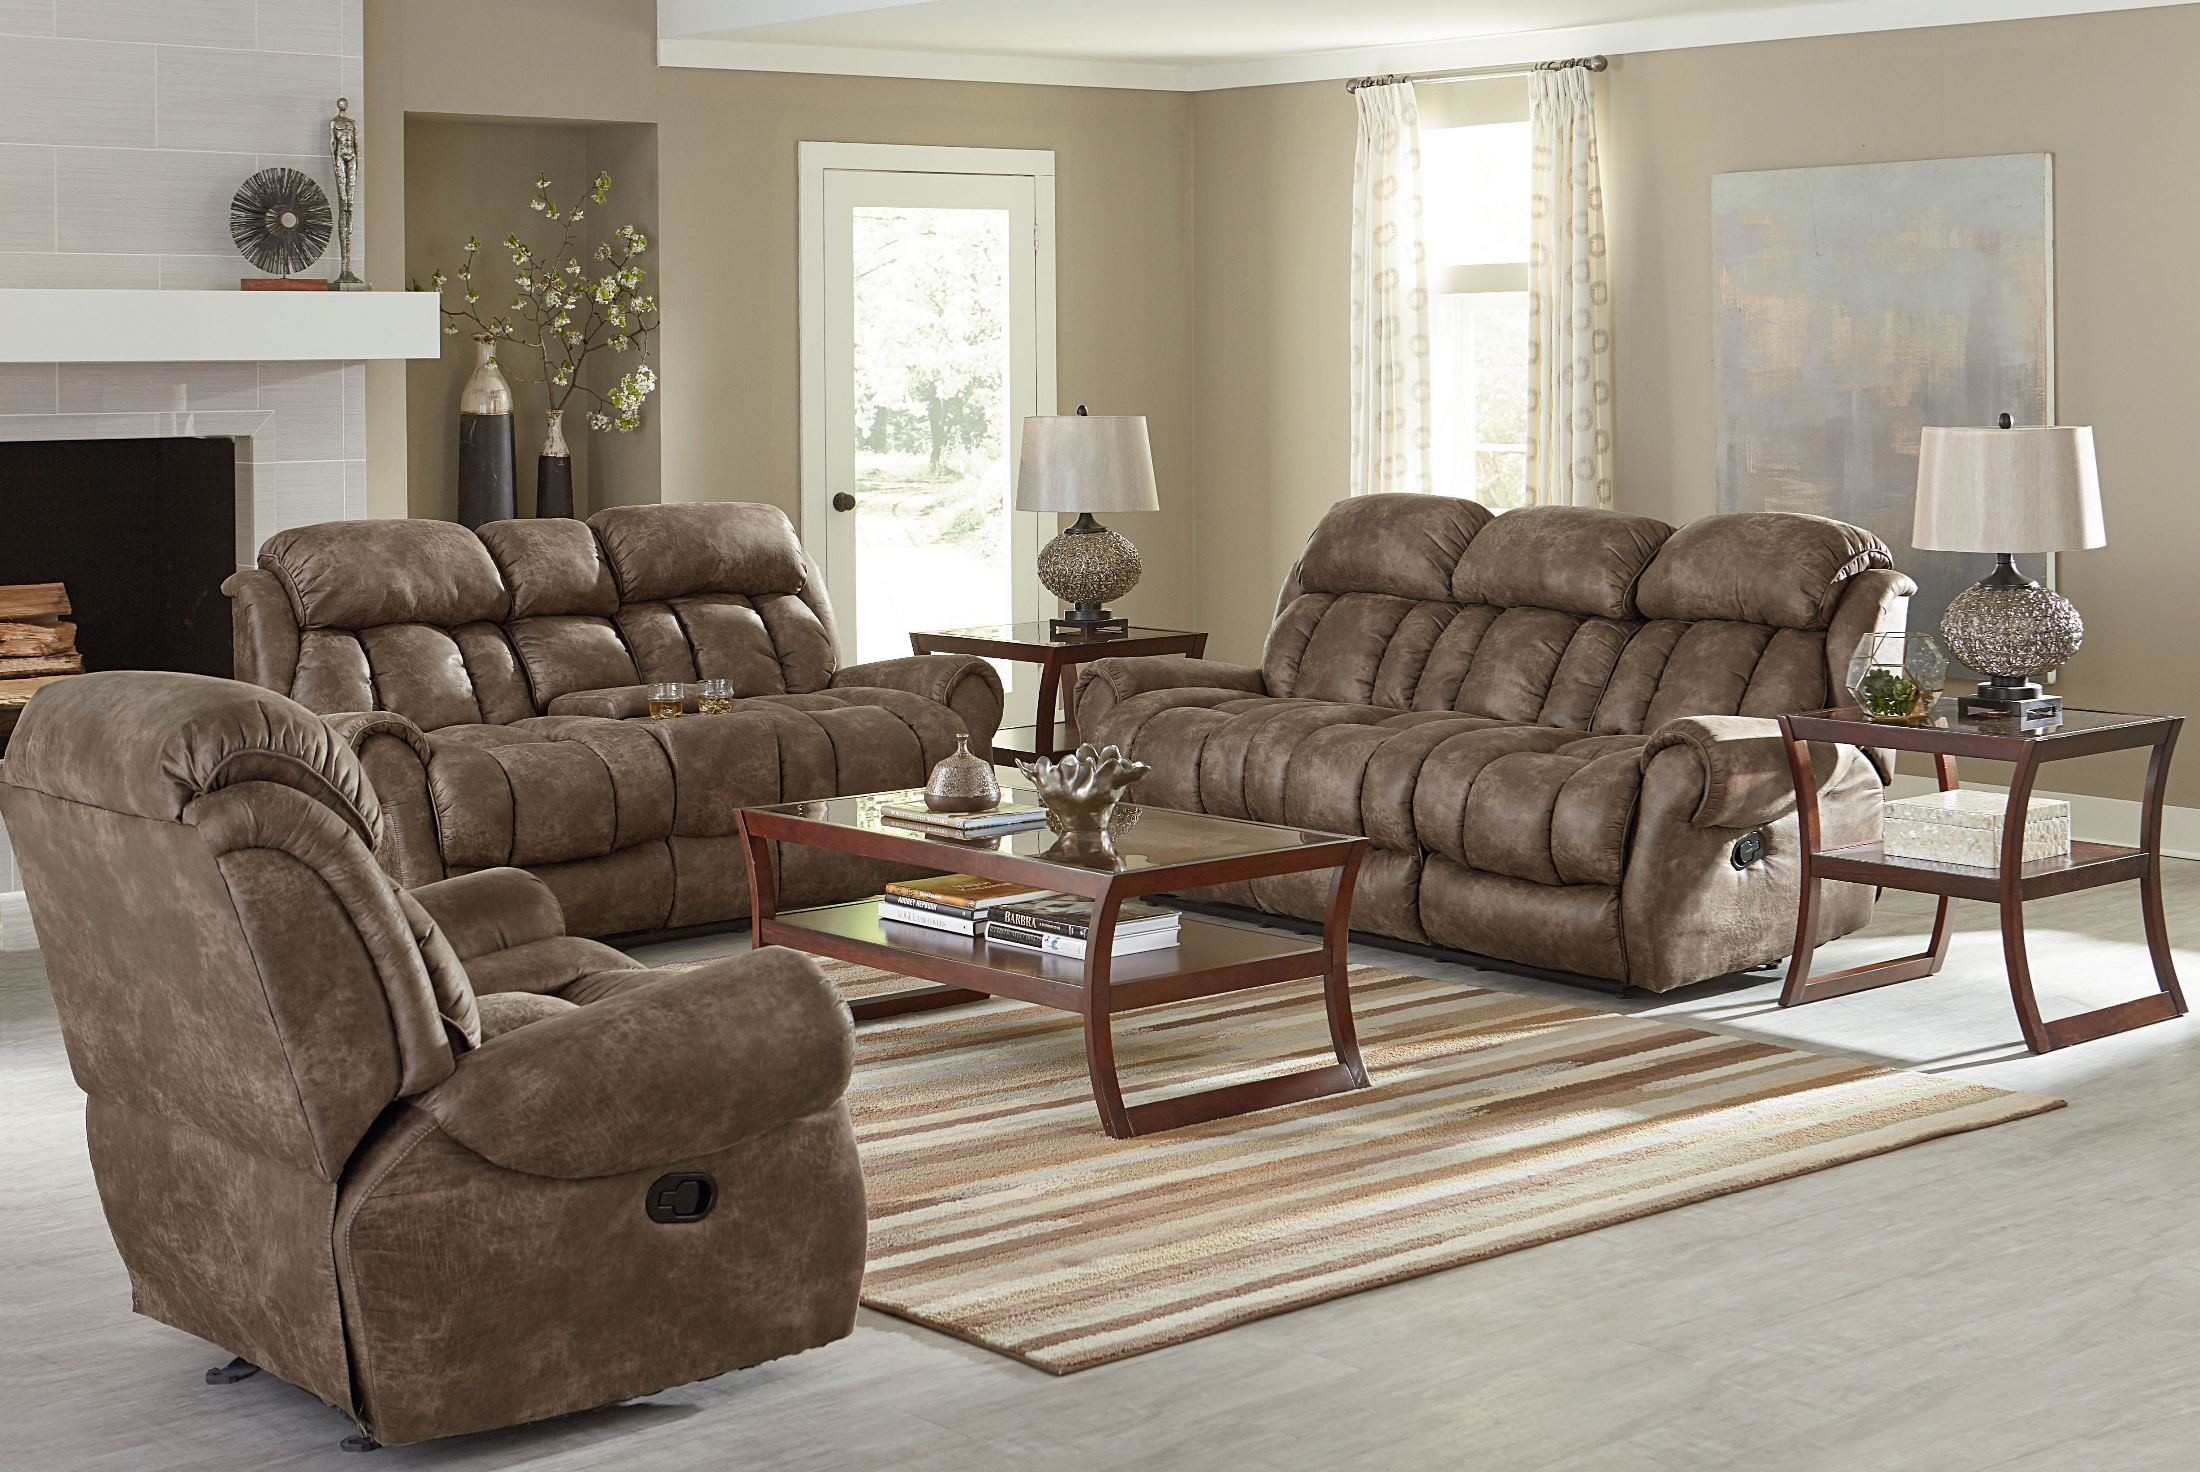 Summit bomber jacket microfiber reclining living room set - Microfiber living room furniture sets ...